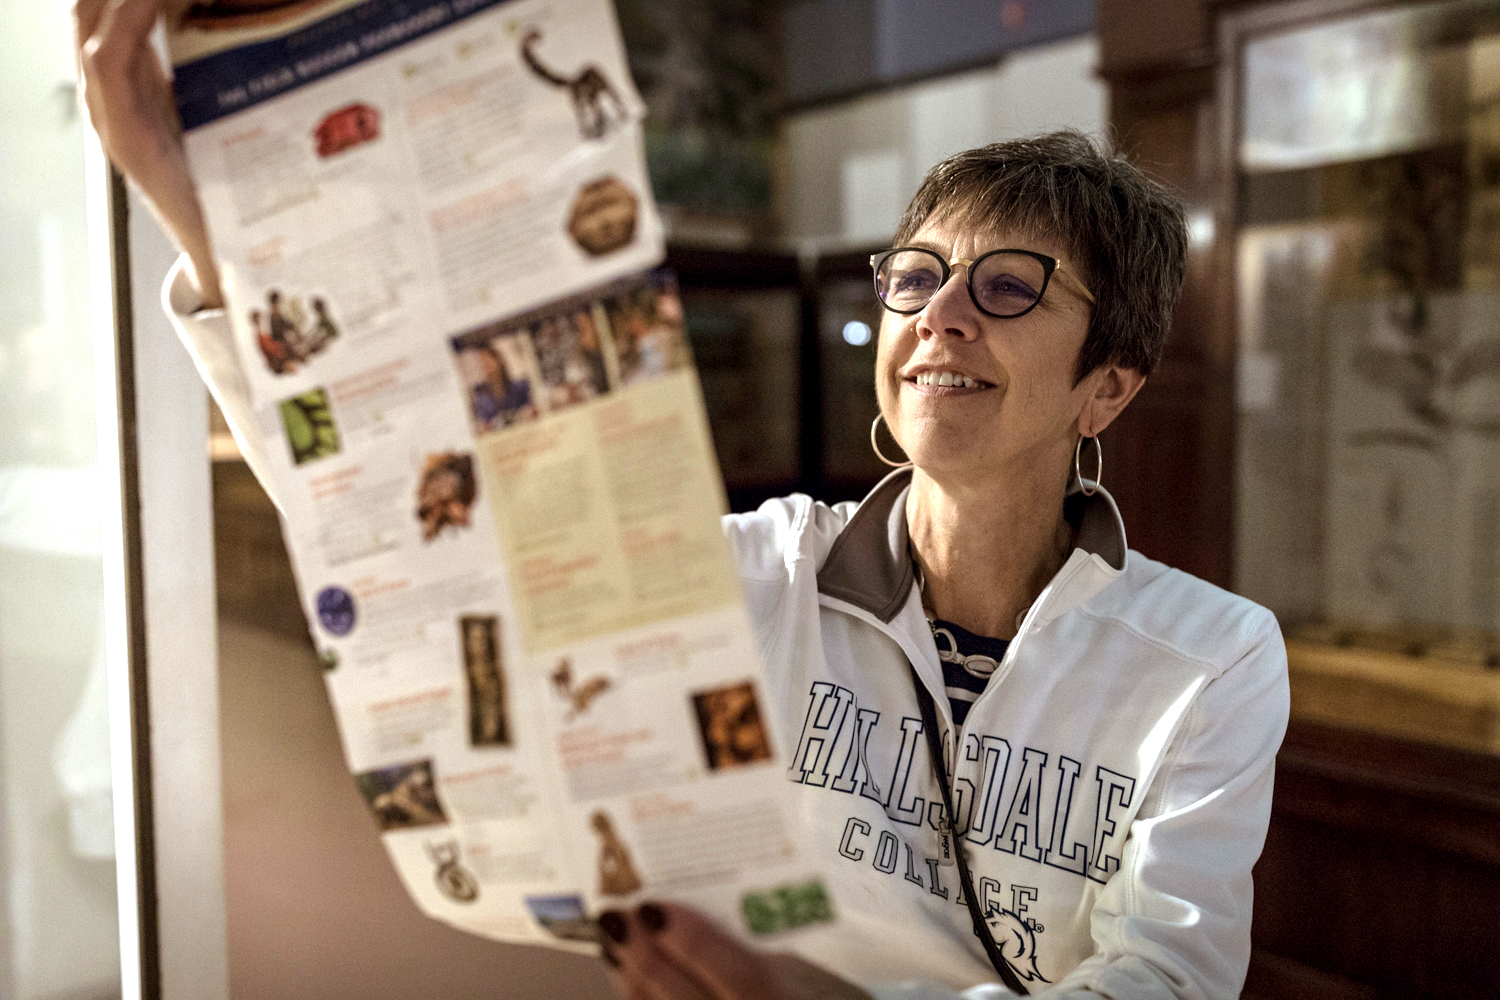 A woman wearing glasses reads a map that's she's unfolded in front of her.